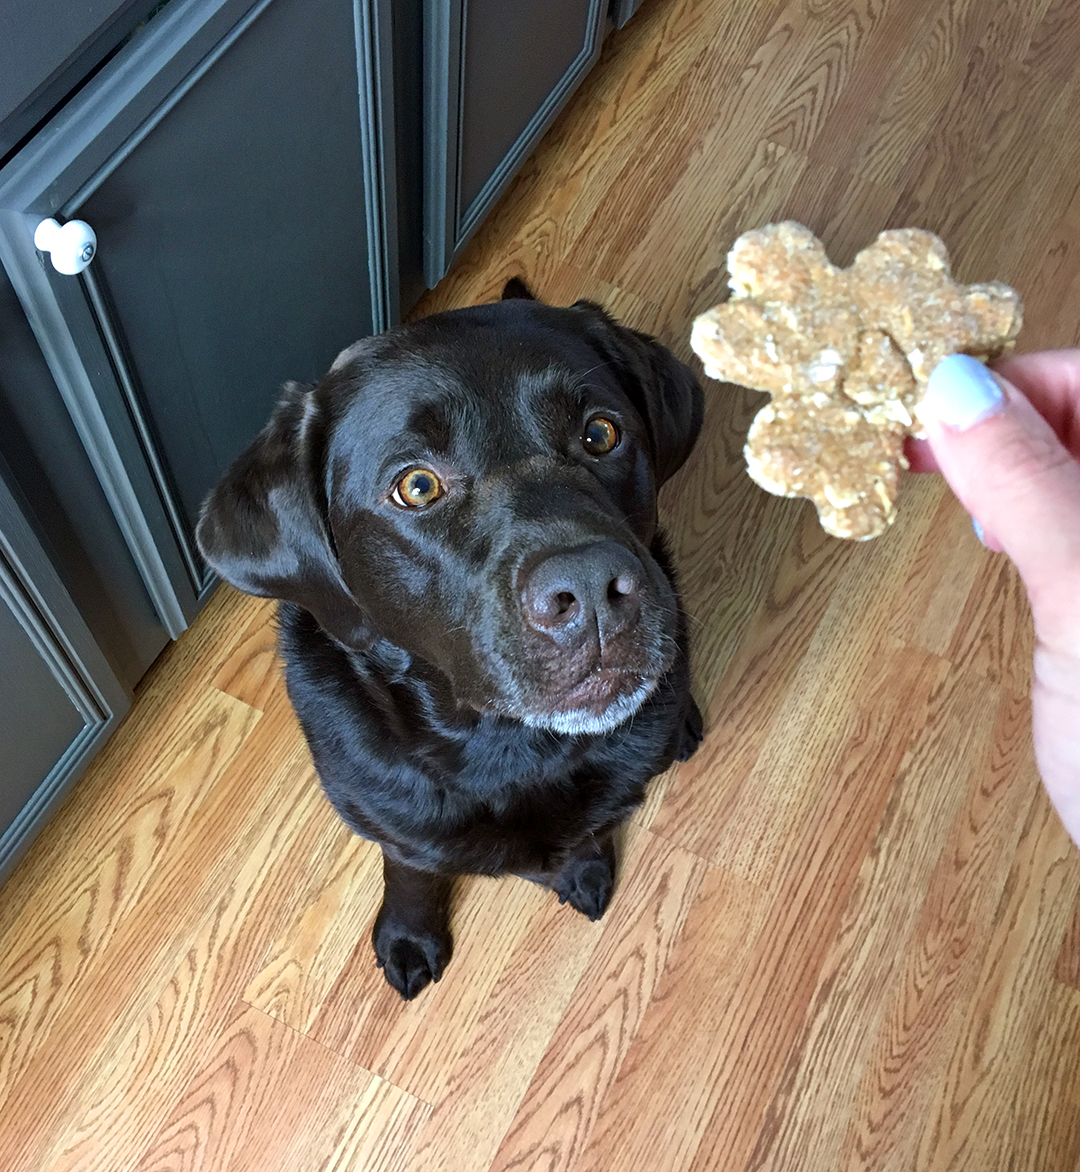 Lab Tested Treats and Toys in the Pup Joy Box